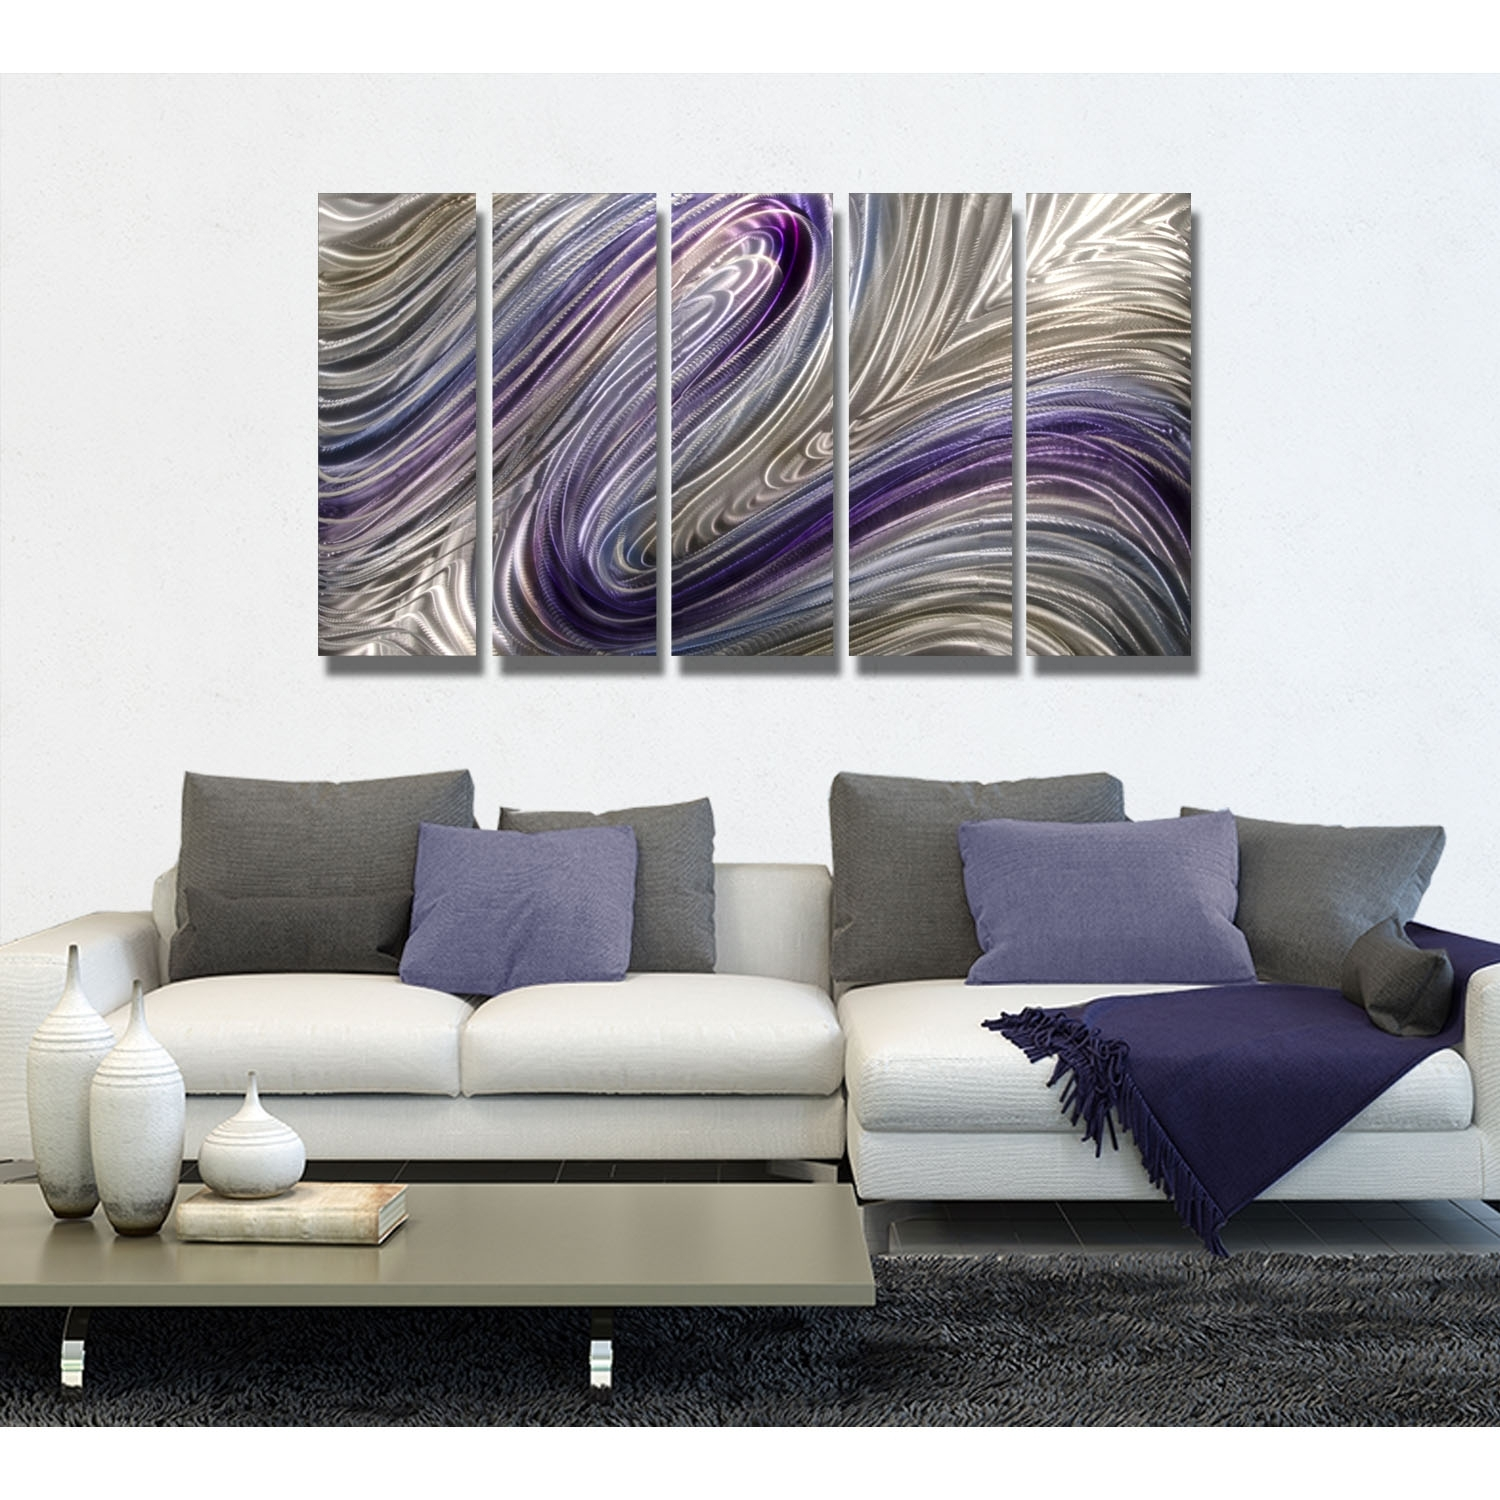 Reverie – Purple, Silver And Gold Metal Wall Art – 5 Panel Wall Pertaining To Newest Purple And Grey Wall Art (View 17 of 20)